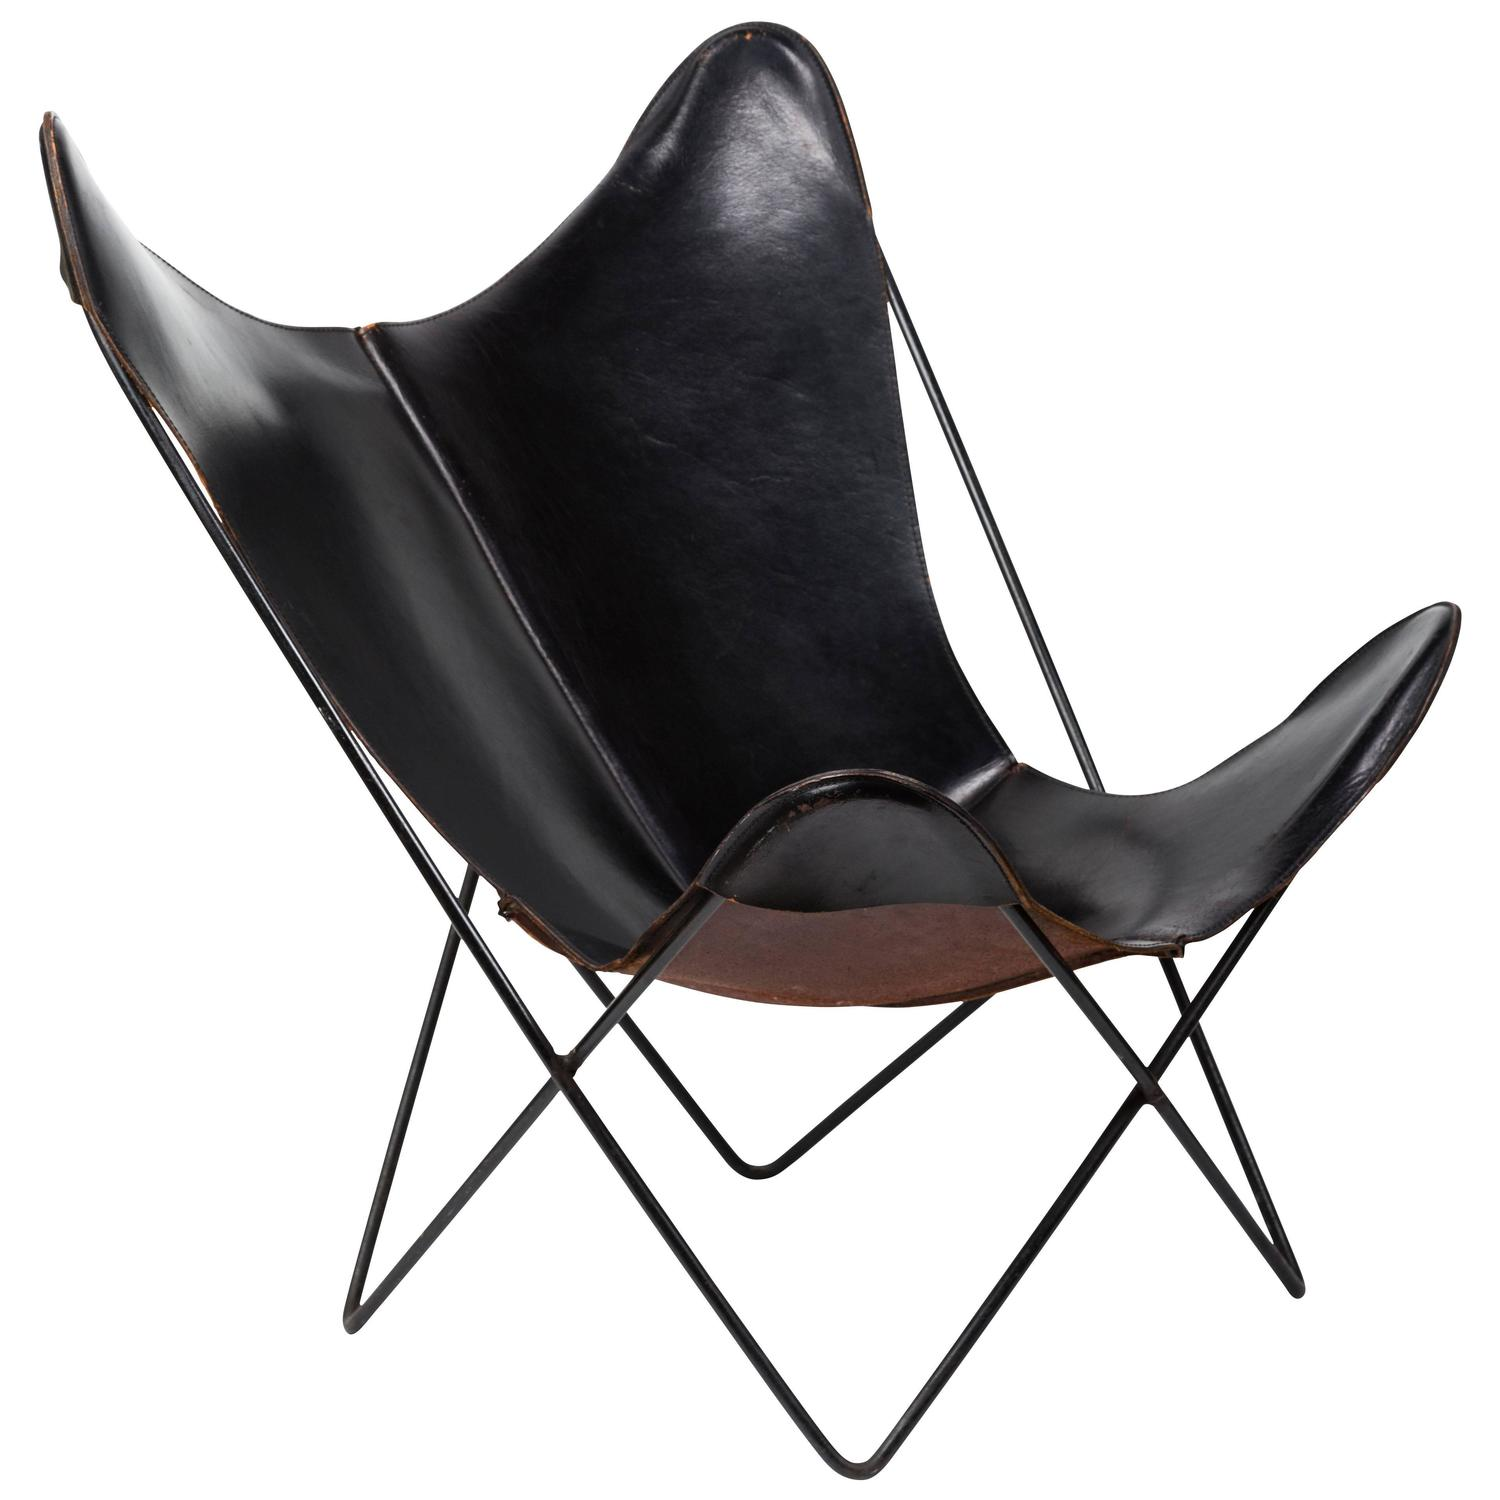 Butterfly chair black - Leather Butterfly Chair By Jorge Ferrari Hardoy For Knoll For Sale At 1stdibs